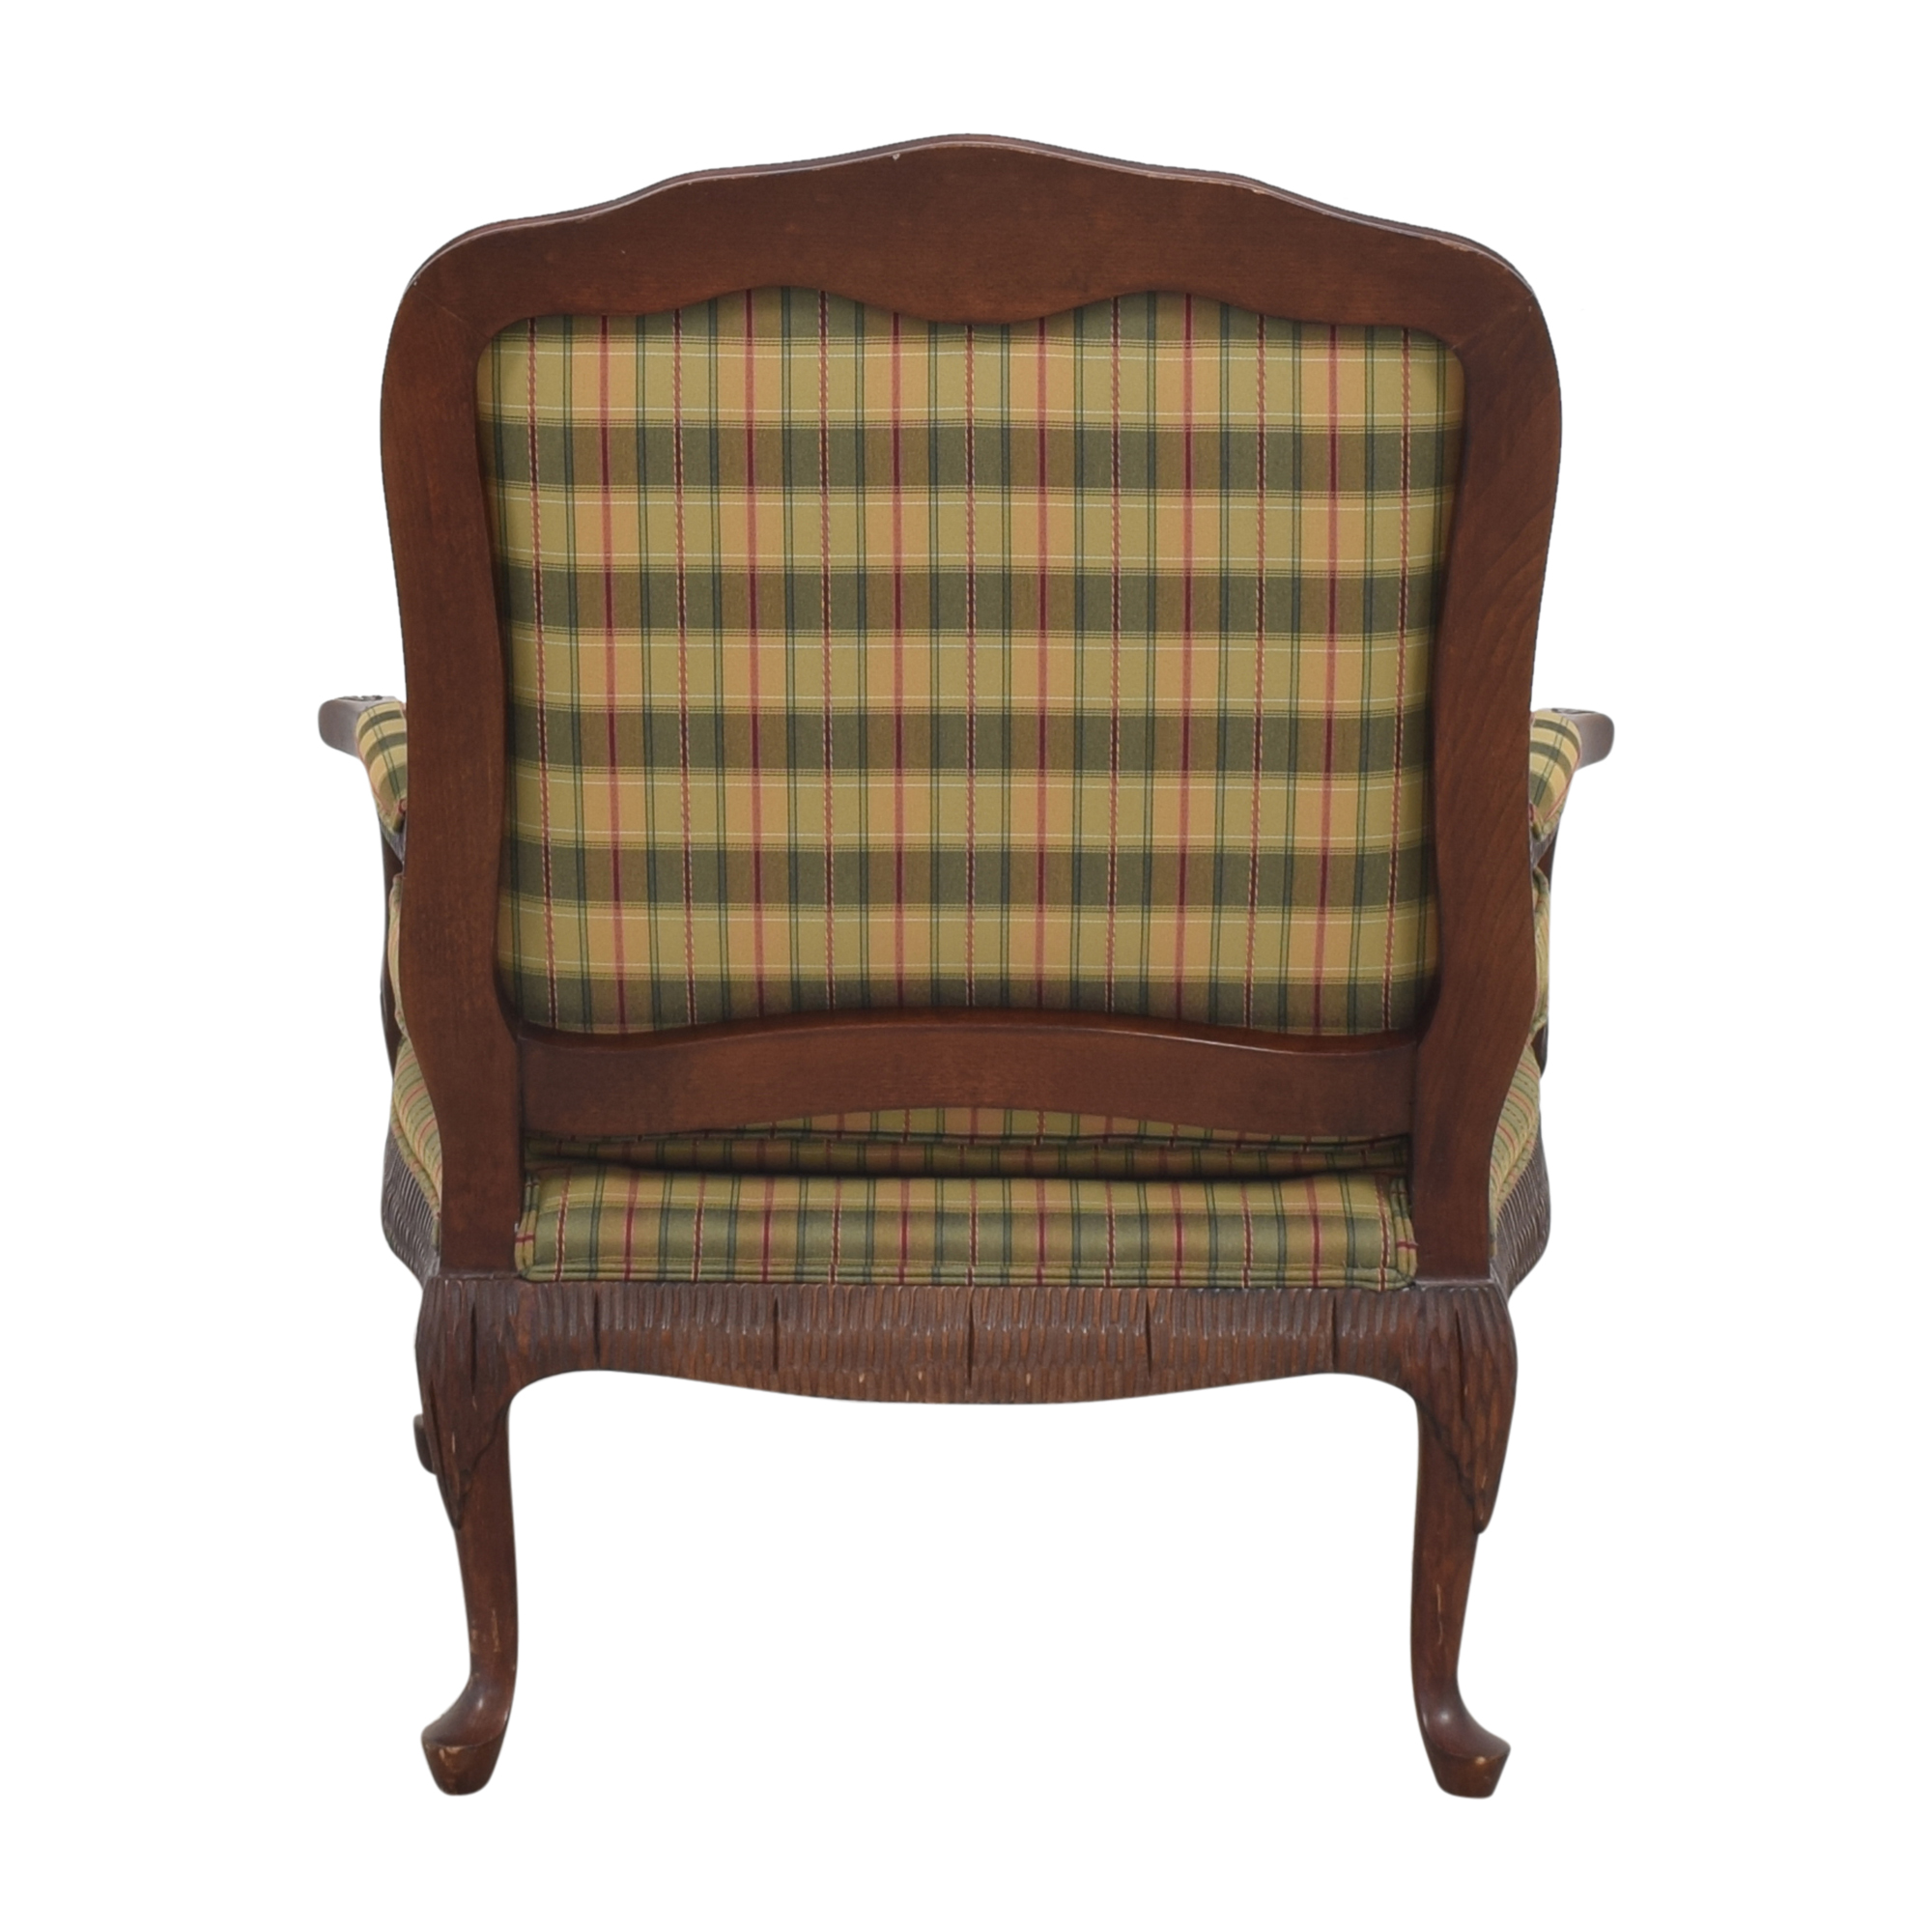 Lexington Furniture Lexington Furniture Upholstered Accent Chair Accent Chairs